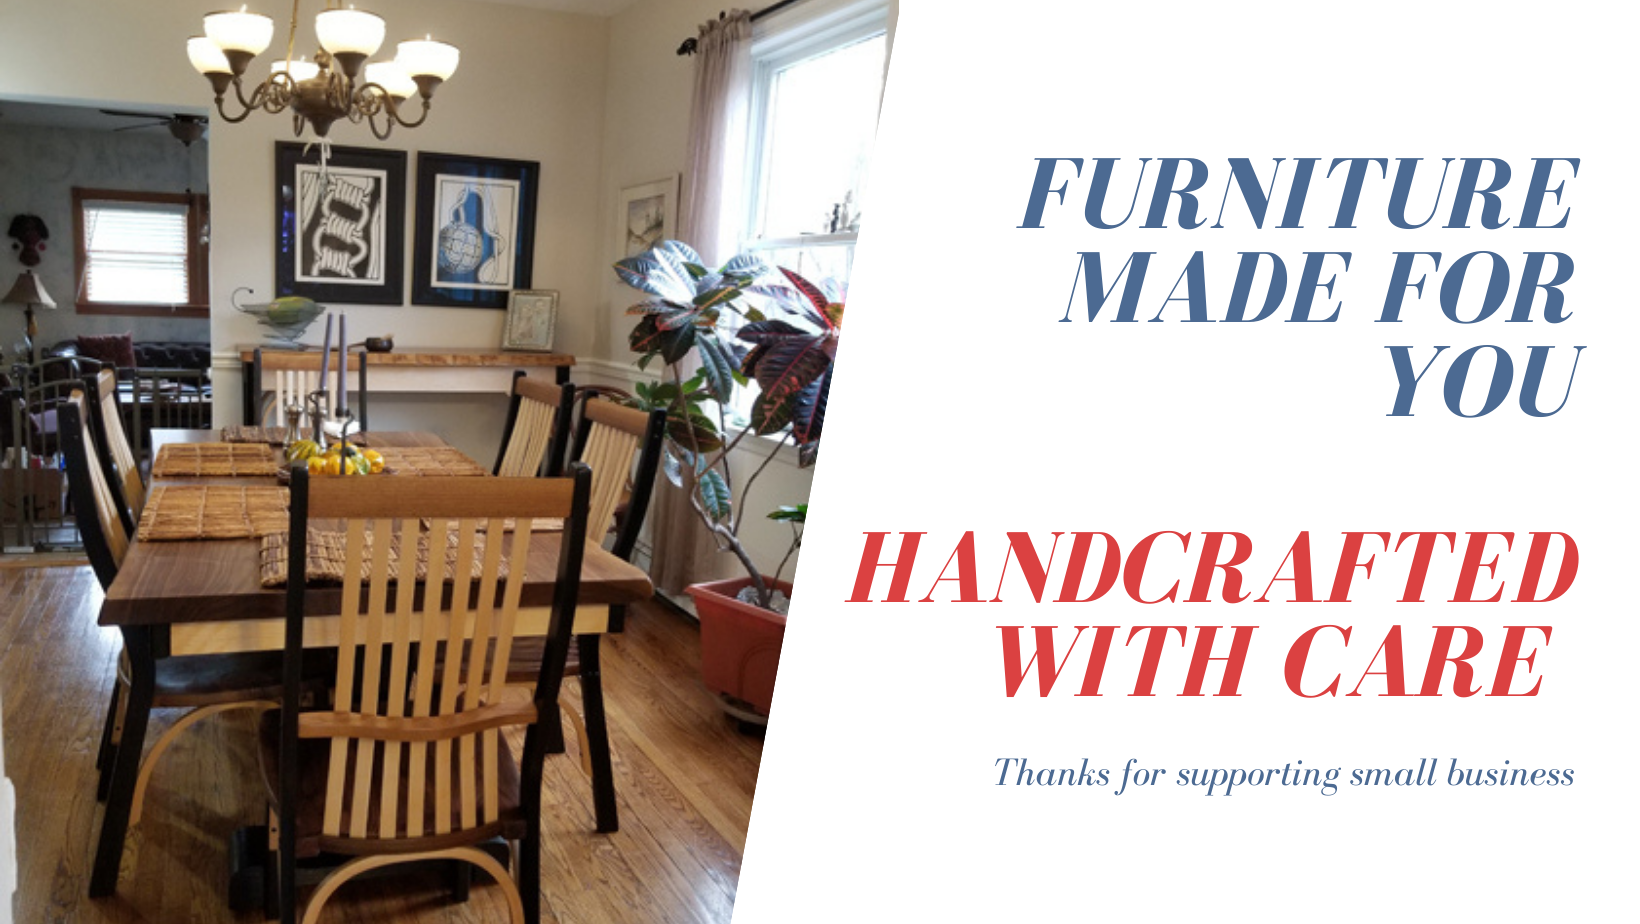 support_small_family_furniture_made_in_usa